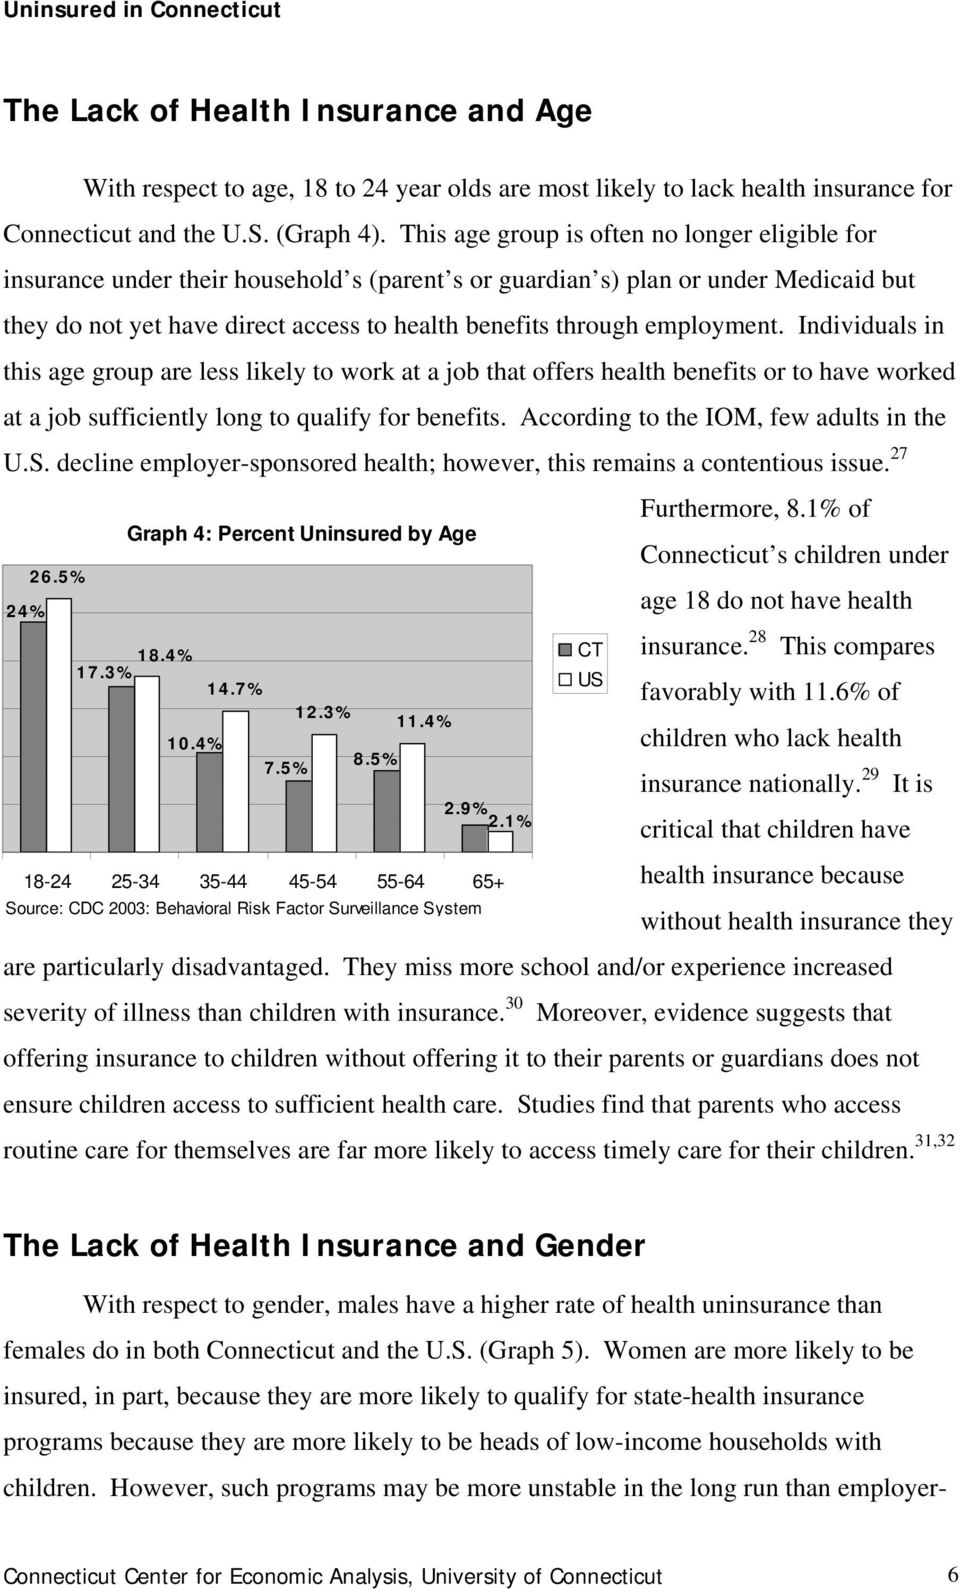 employment. Individuals in this age group are less likely to work at a job that offers health benefits or to have worked at a job sufficiently long to qualify for benefits.